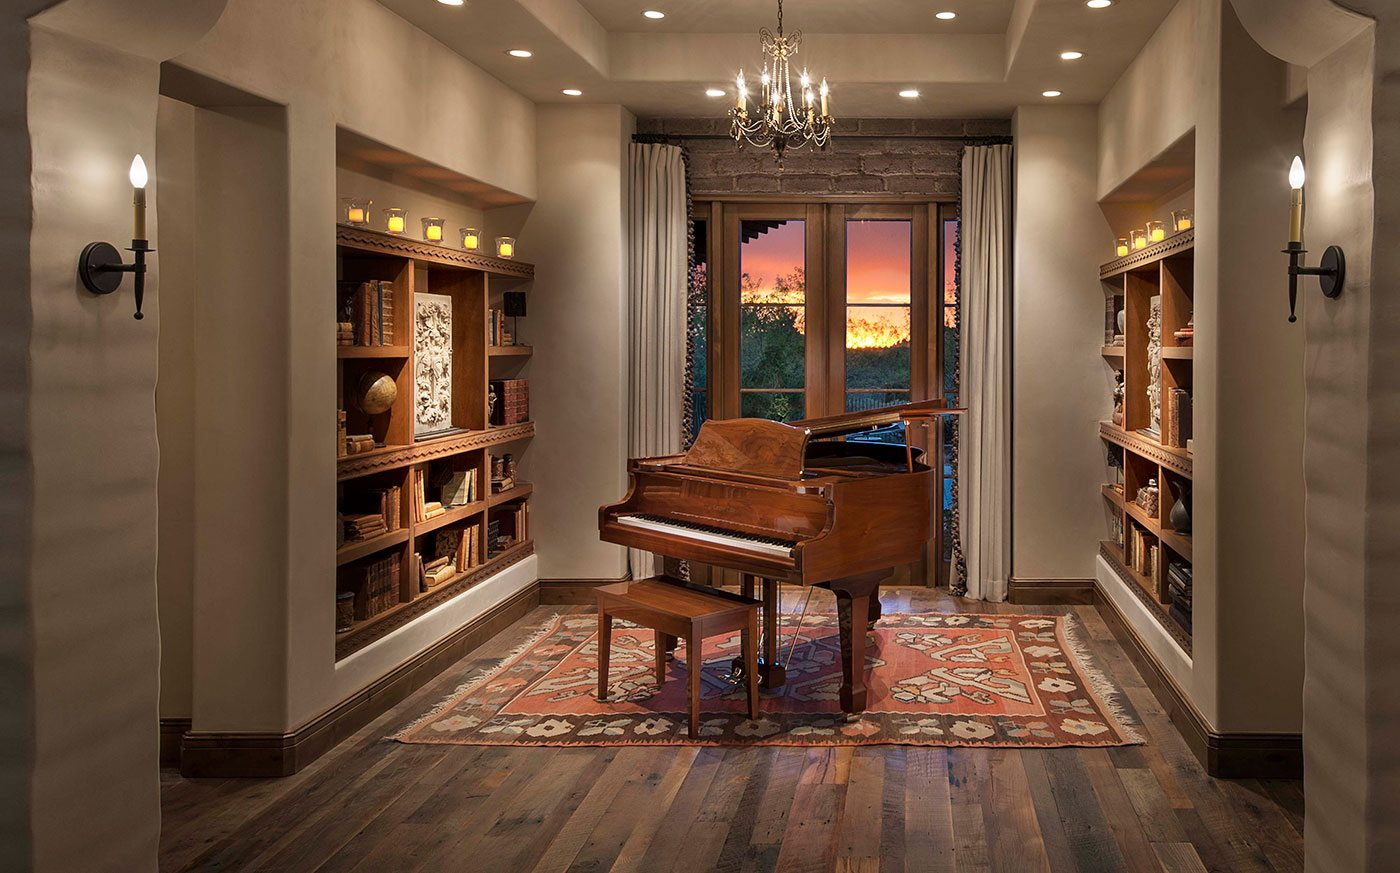 arizona luxury interior design interior design by janet brooks rh janetbrooksdesign com adobe illustrator interior design adobe interior design office